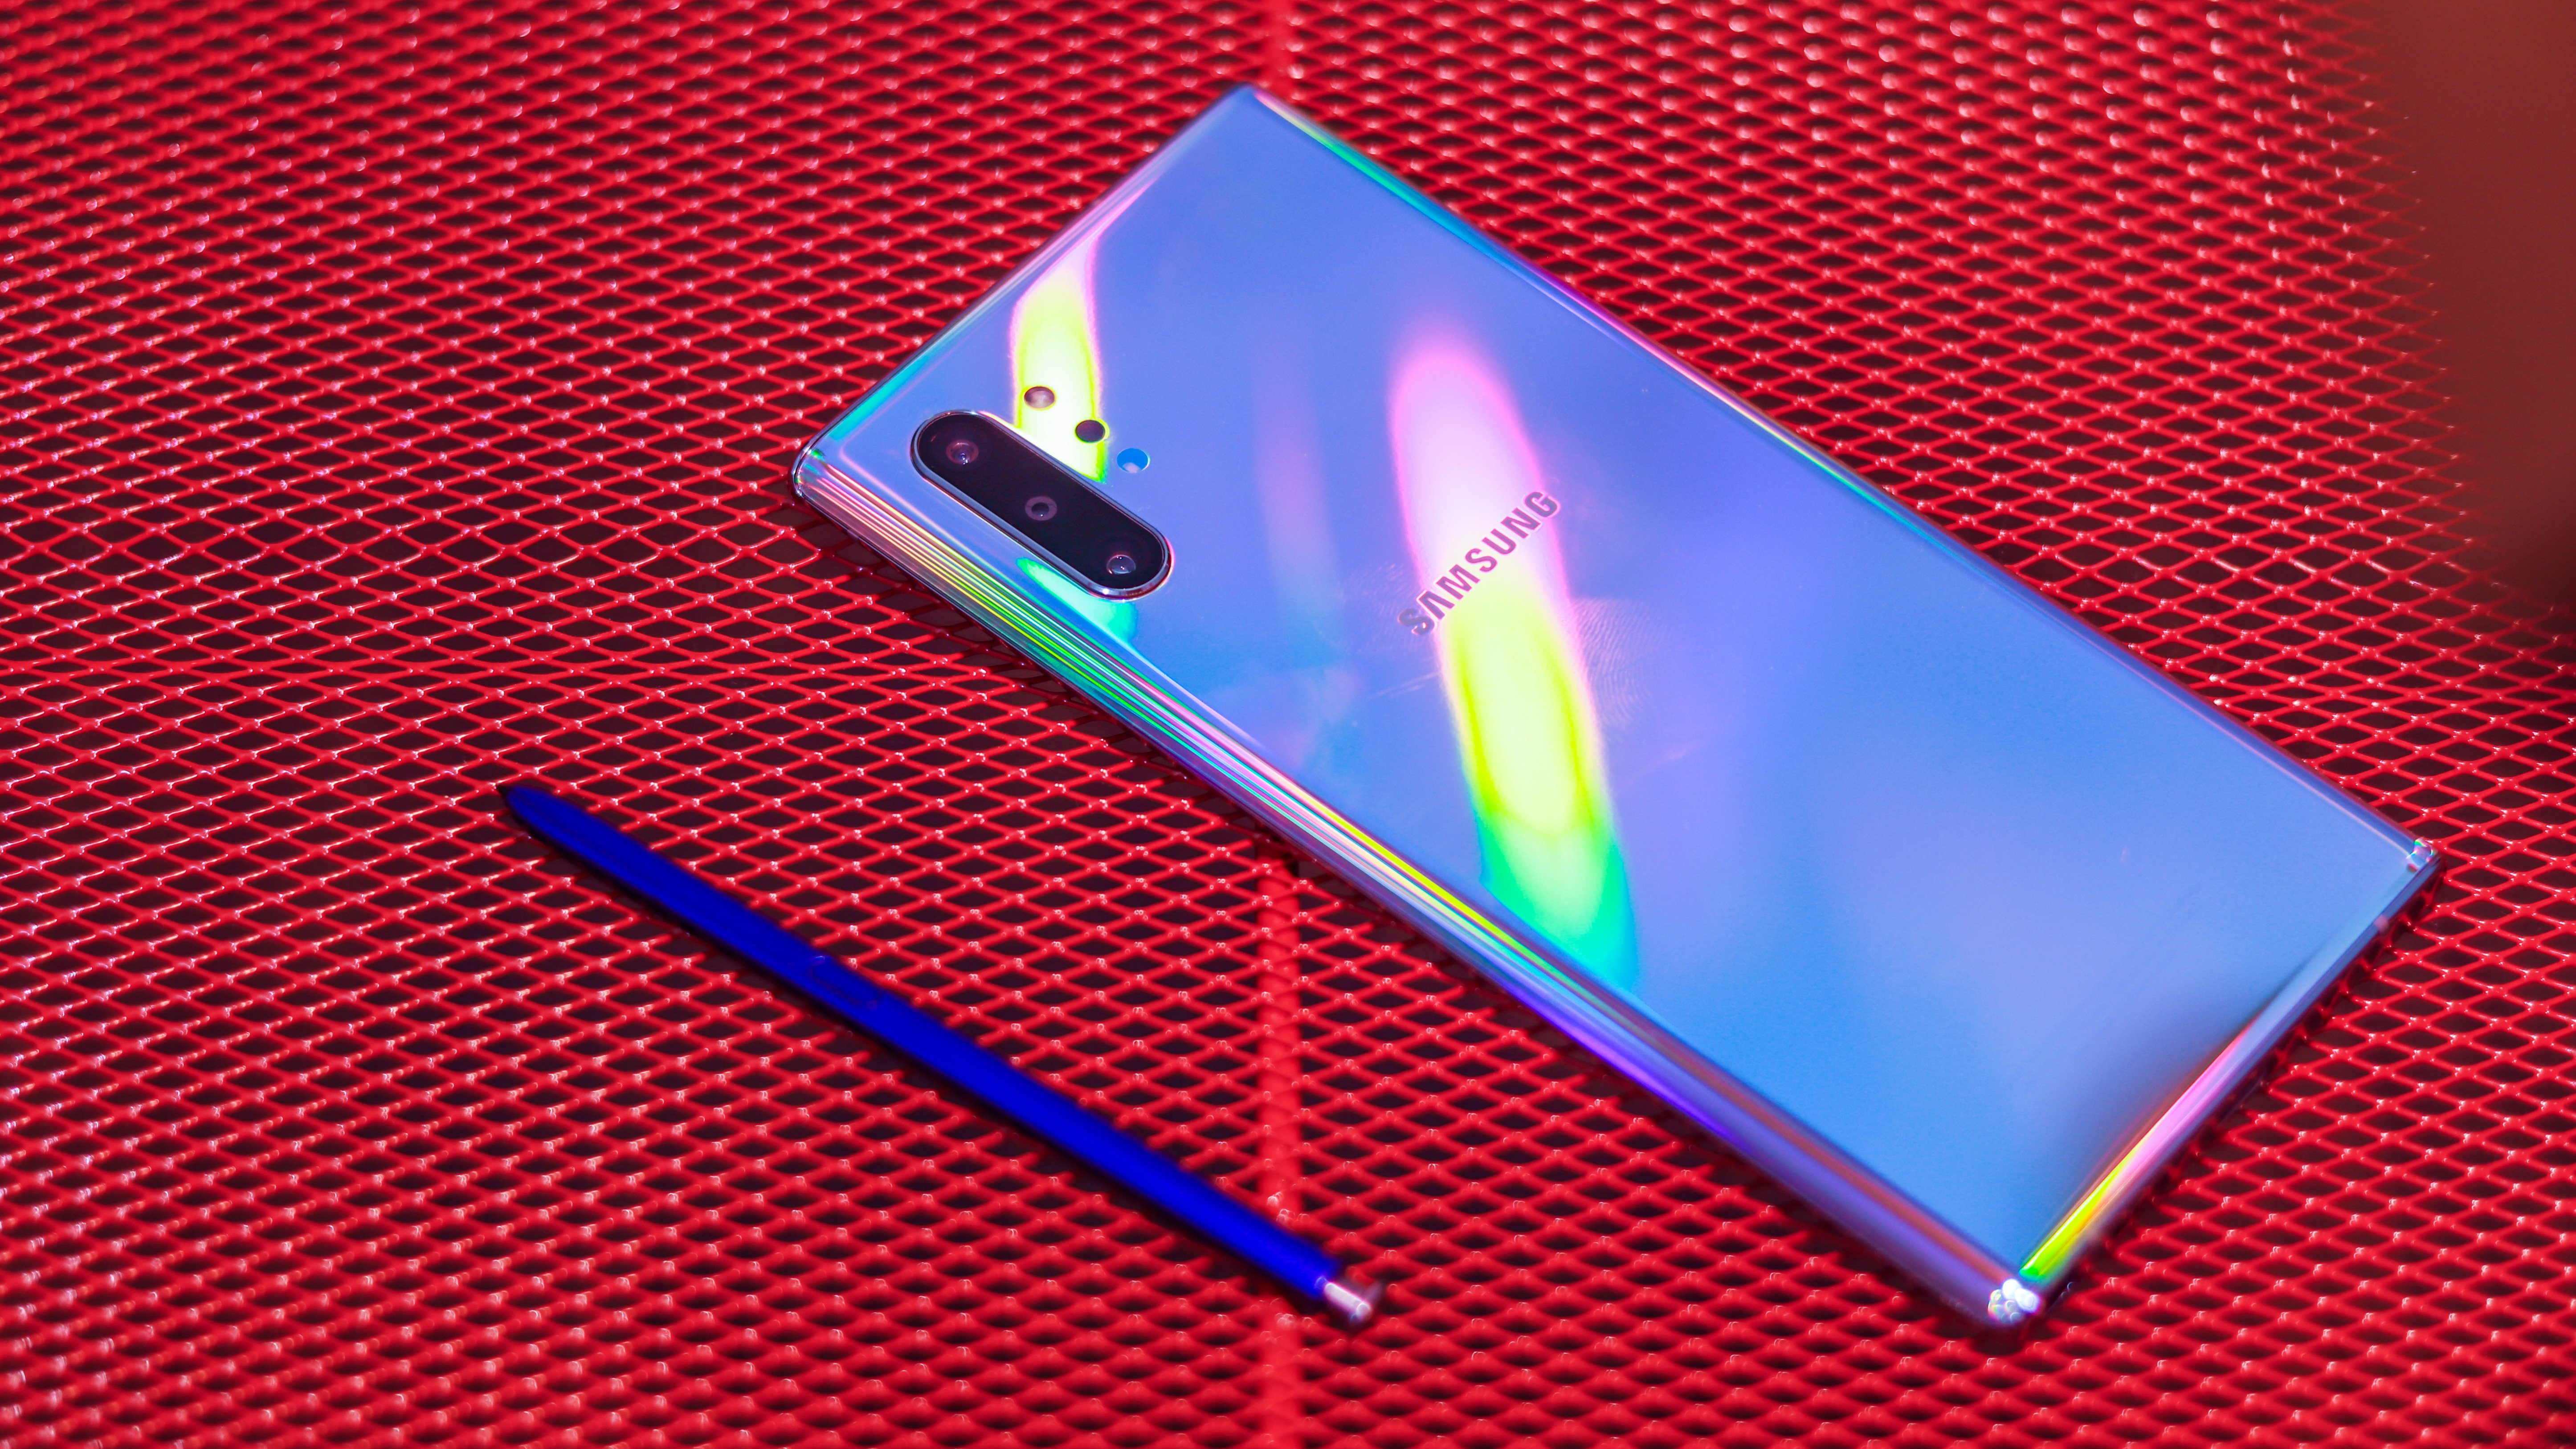 Samsung Galaxy Note 20 visits Geekbench with a new Snapdragon chipset